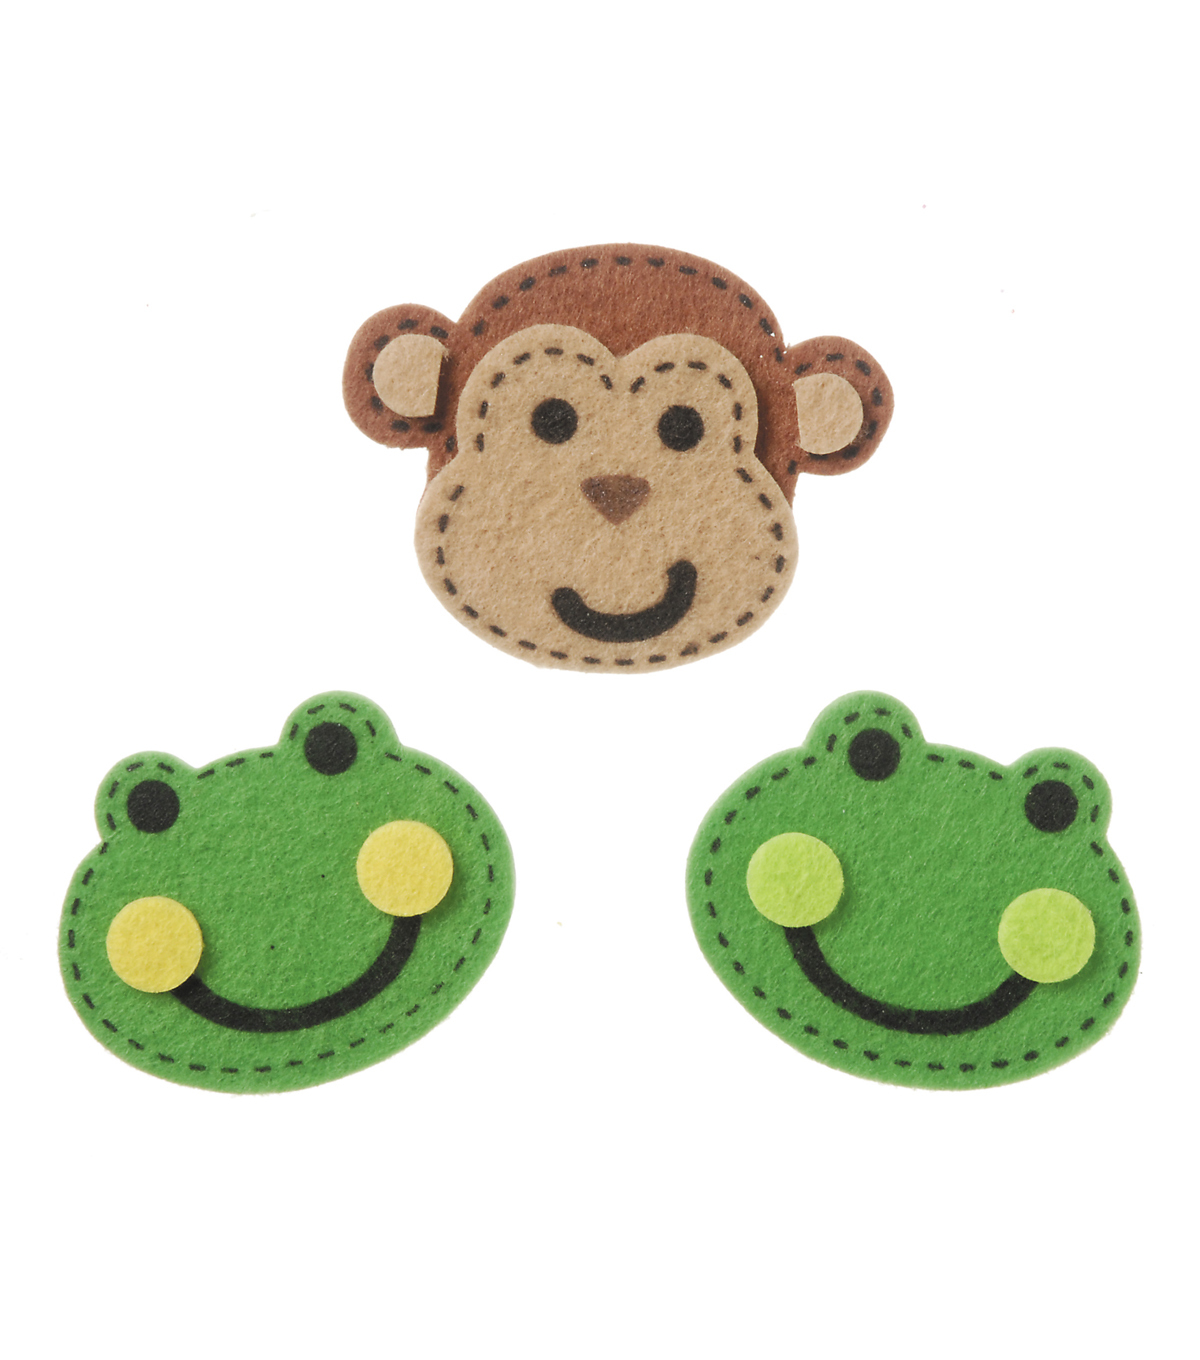 Stickers Small Felt Frog Monkey w/Stitches, 16pc